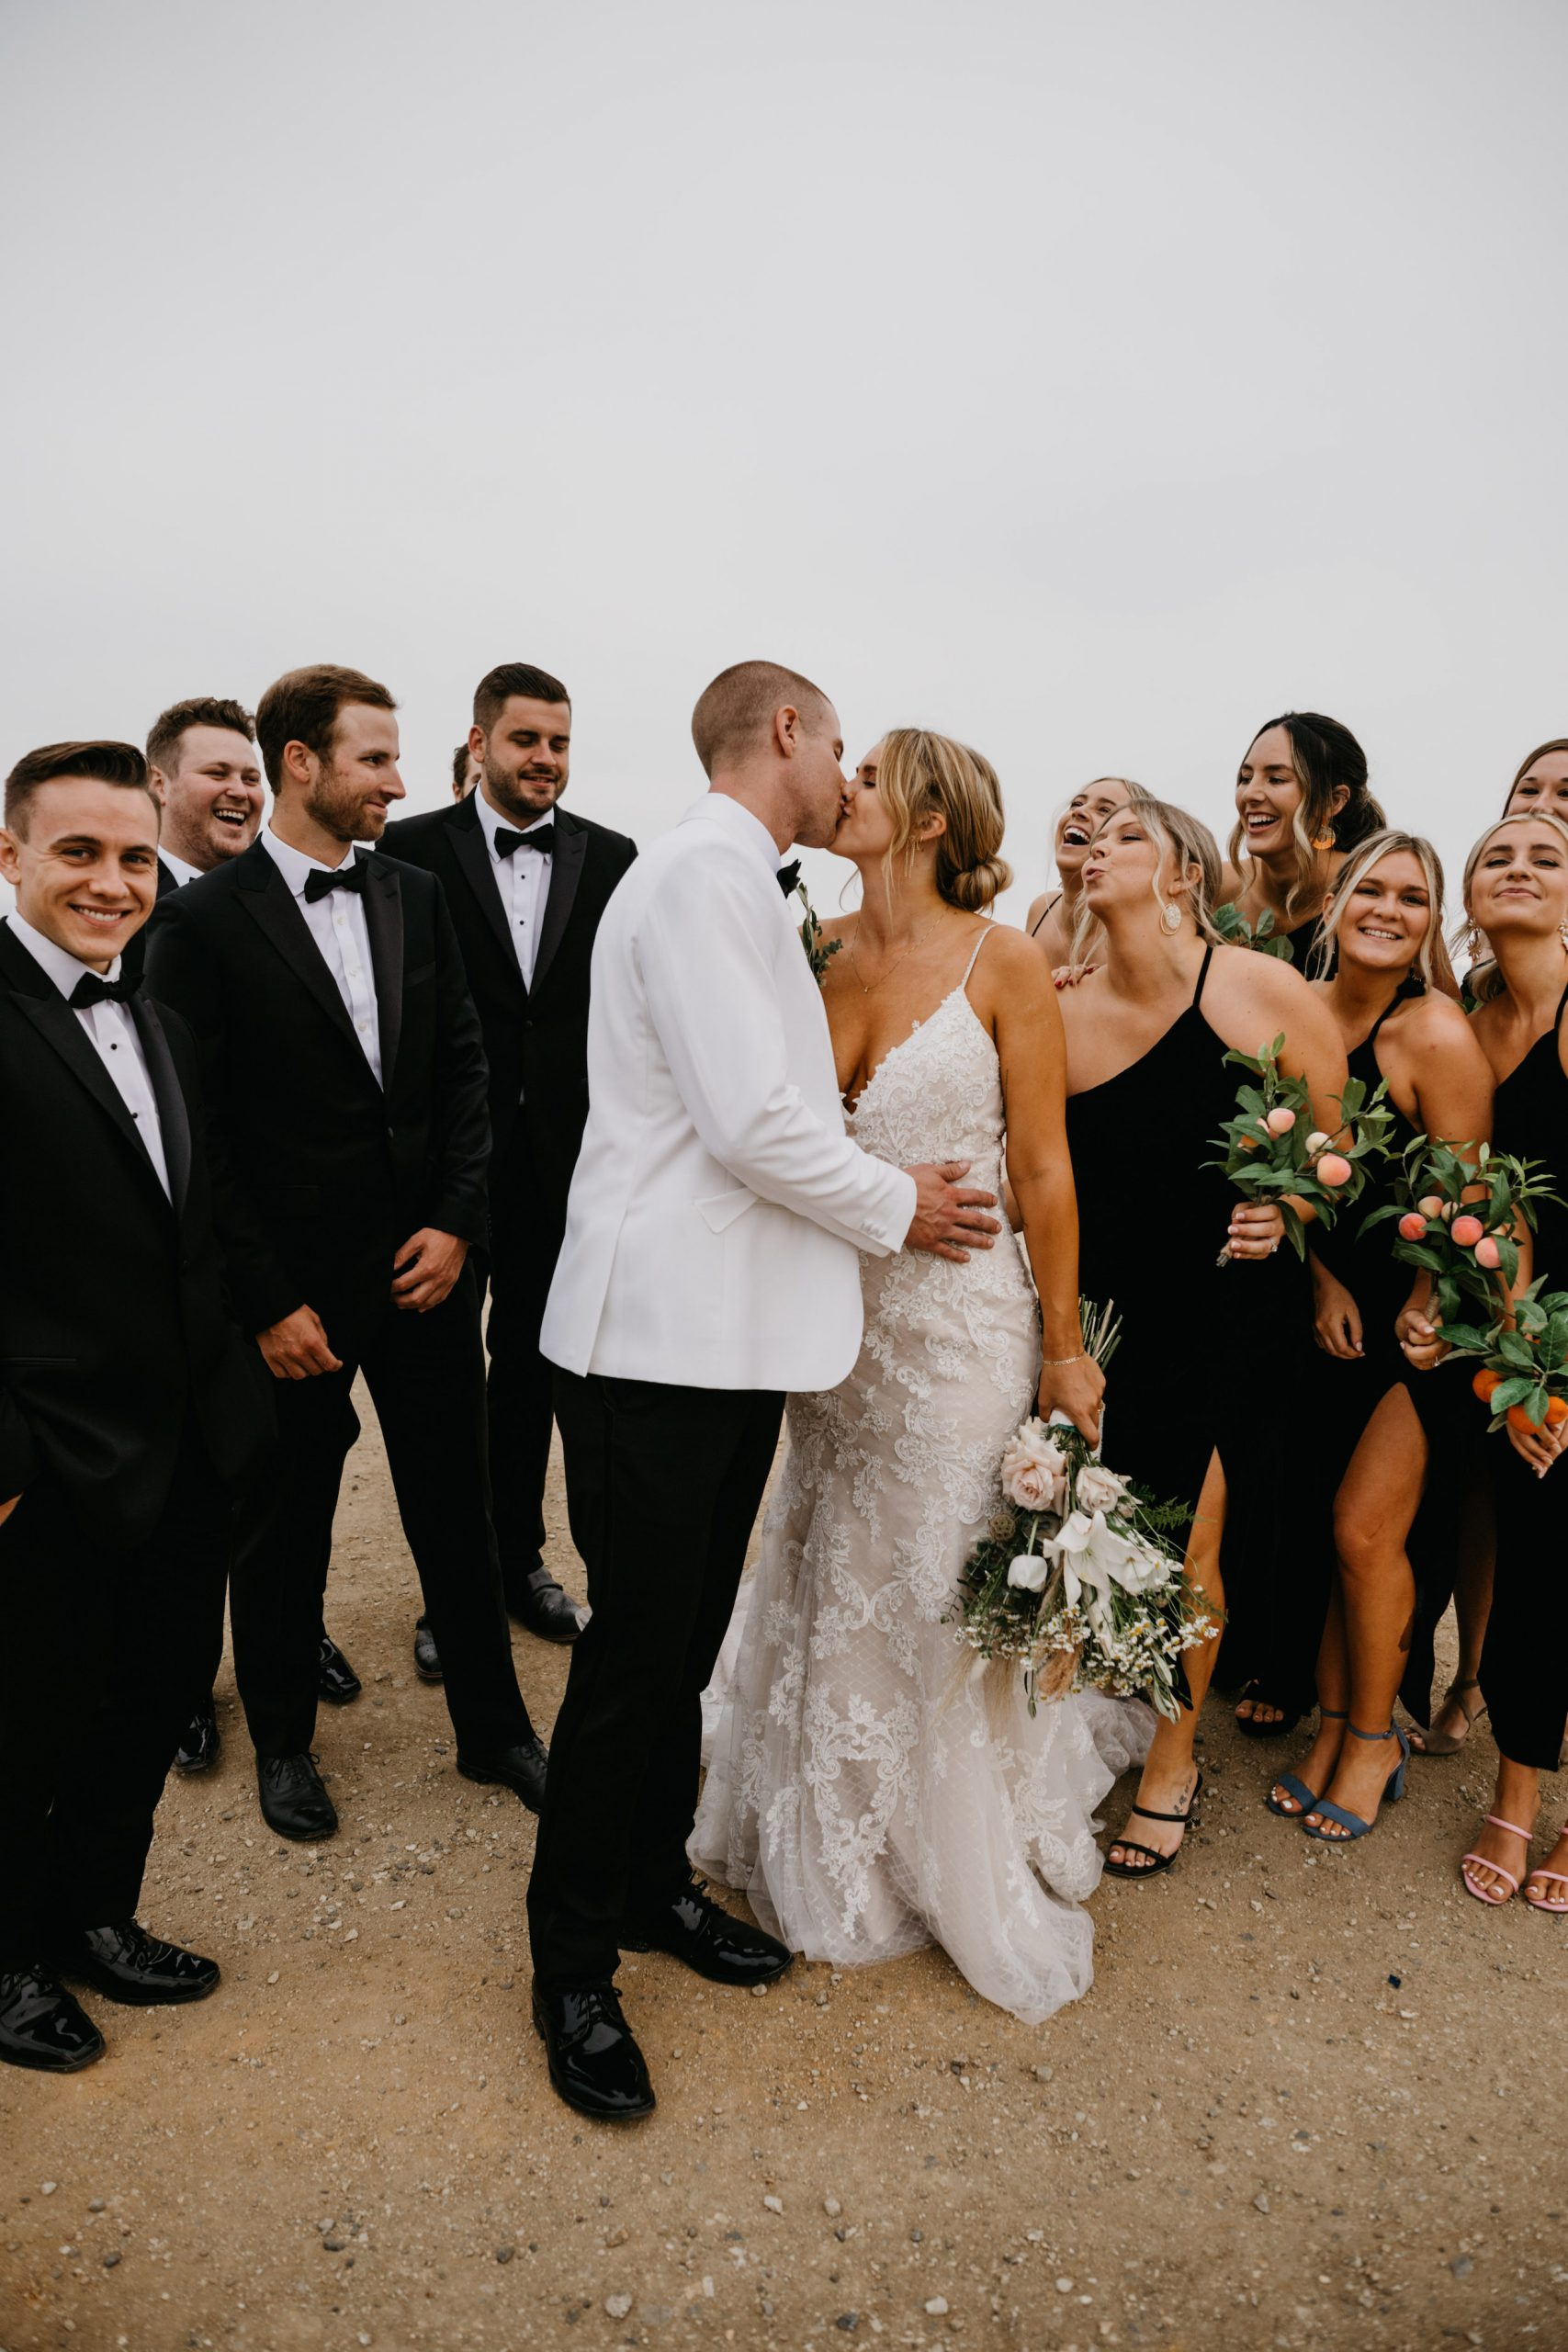 Bridal Party in Crystal Cove State Park Wedding in Laguna Beach, image by Fatima Elreda Photo